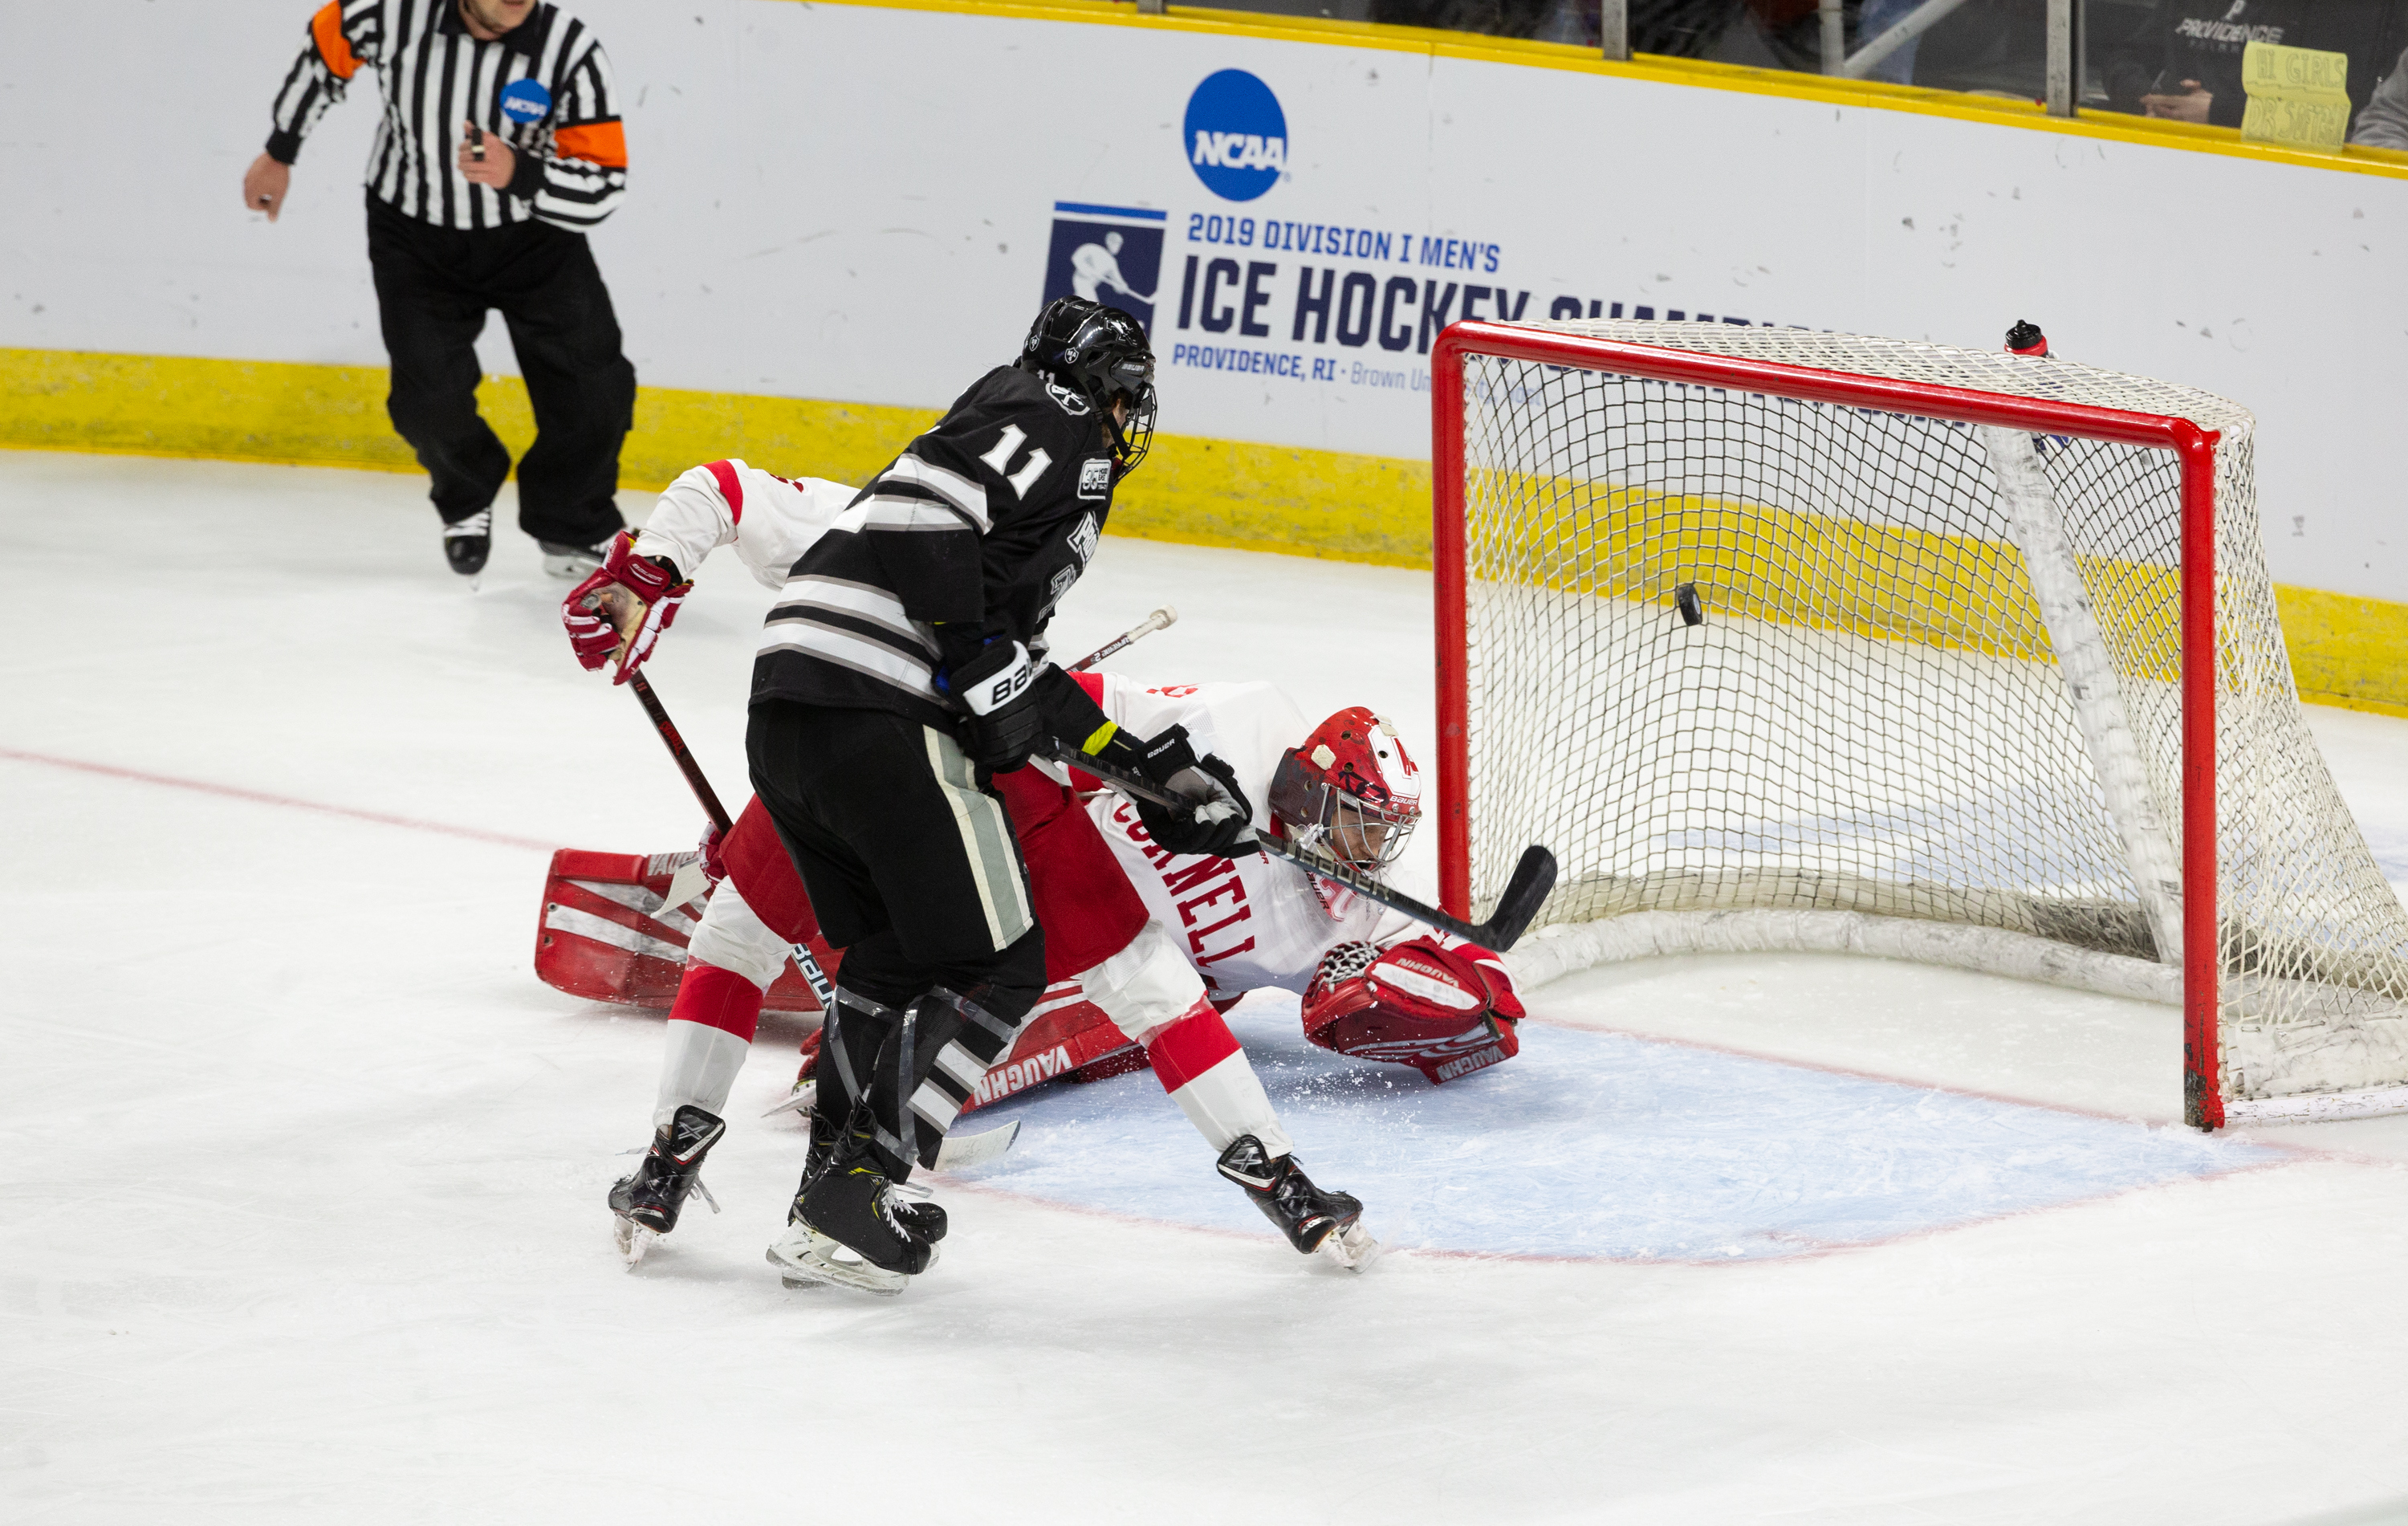 Field is set for NCAA Frozen Four at KeyBank Center on April 11